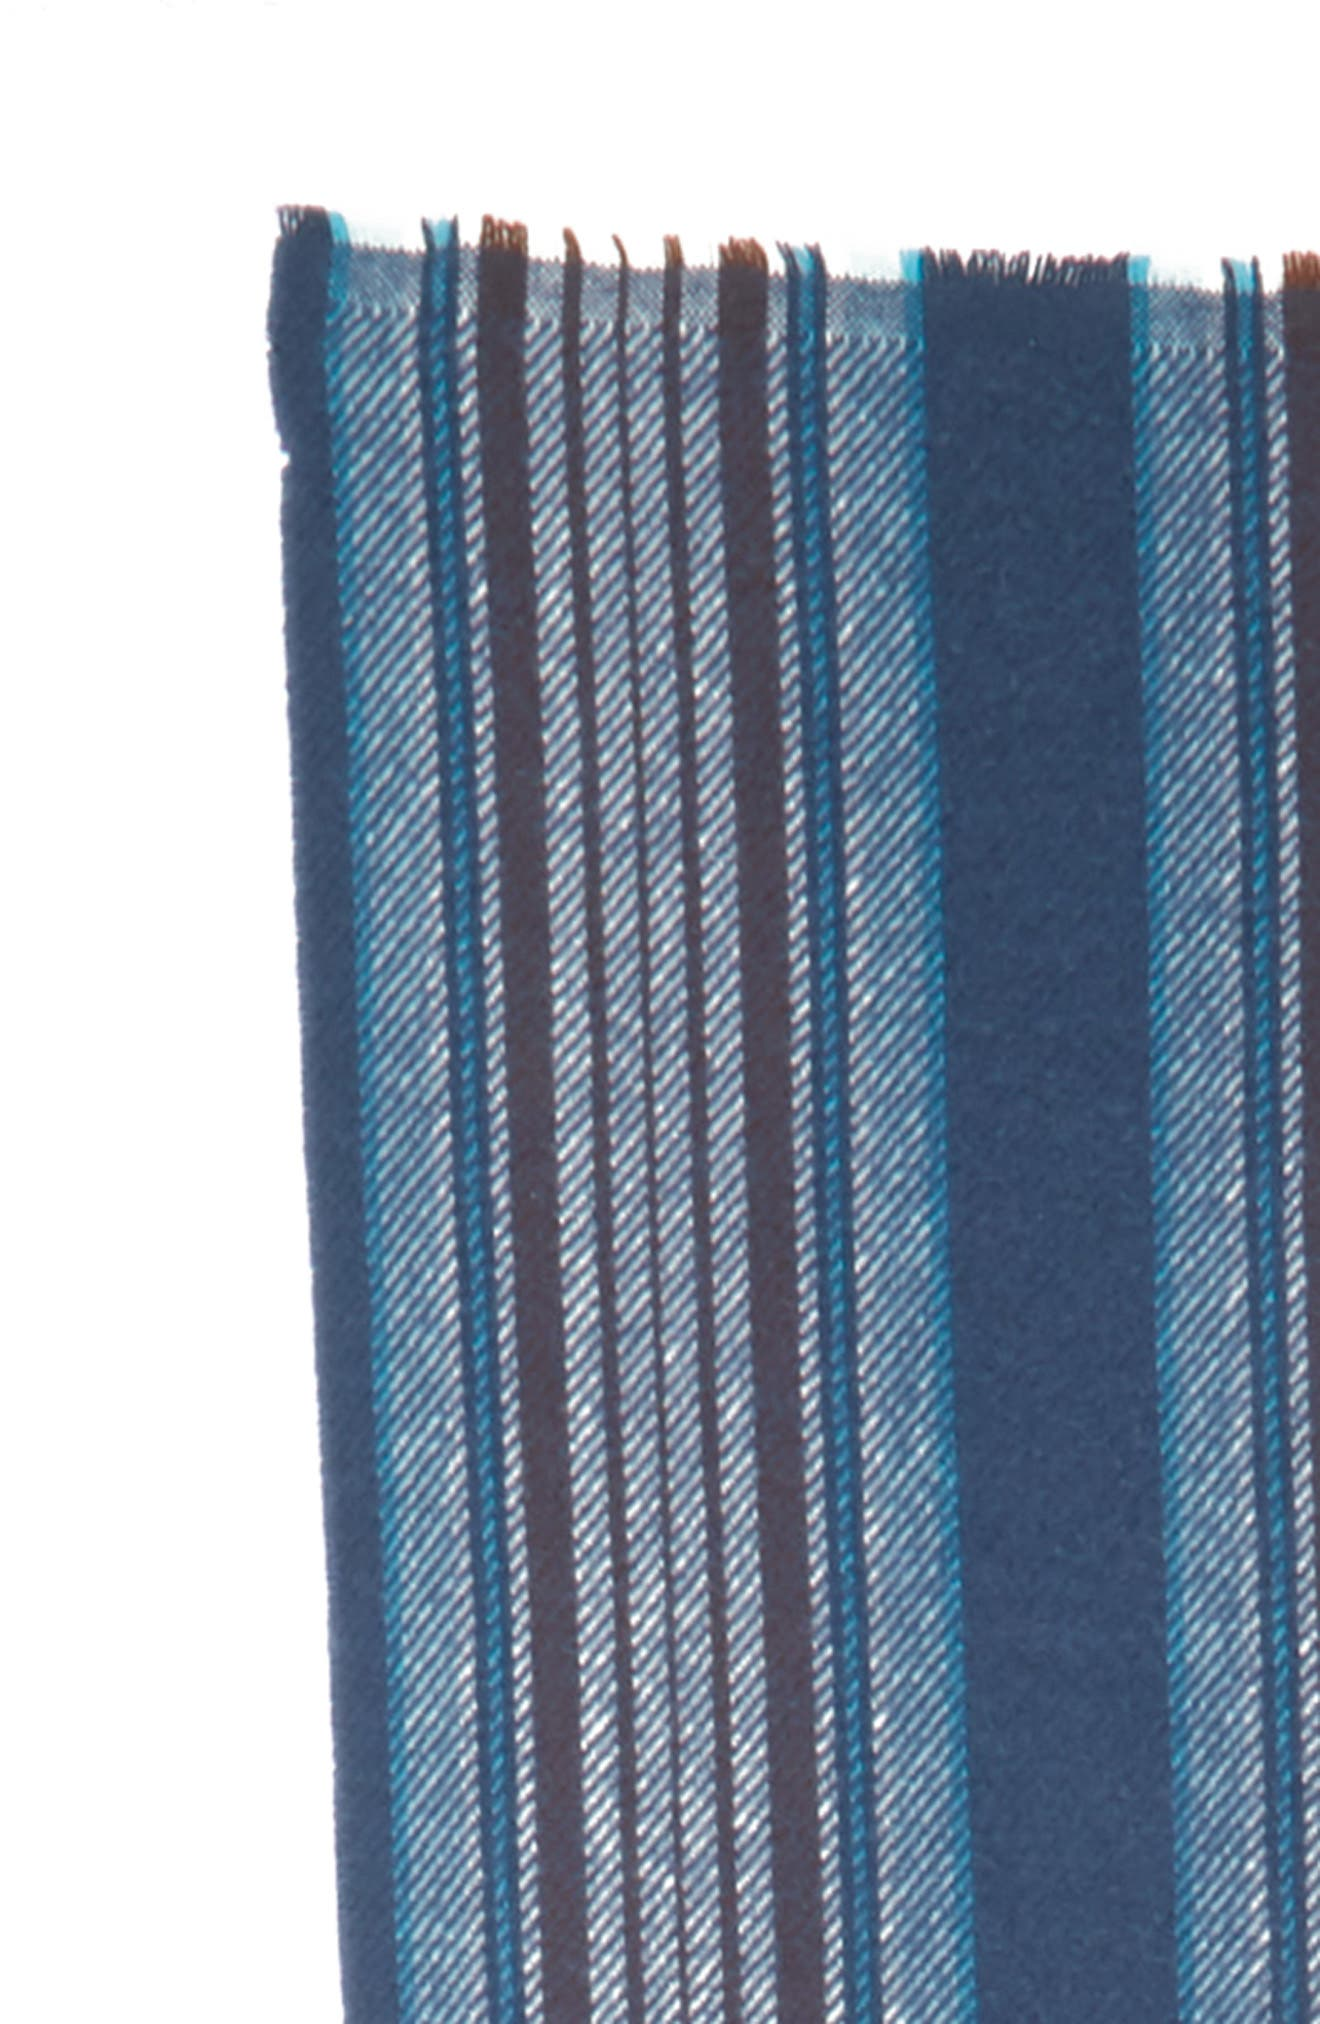 Check Wool Scarf,                             Alternate thumbnail 3, color,                             OATMEAL BEIGE / BLUE CHECK